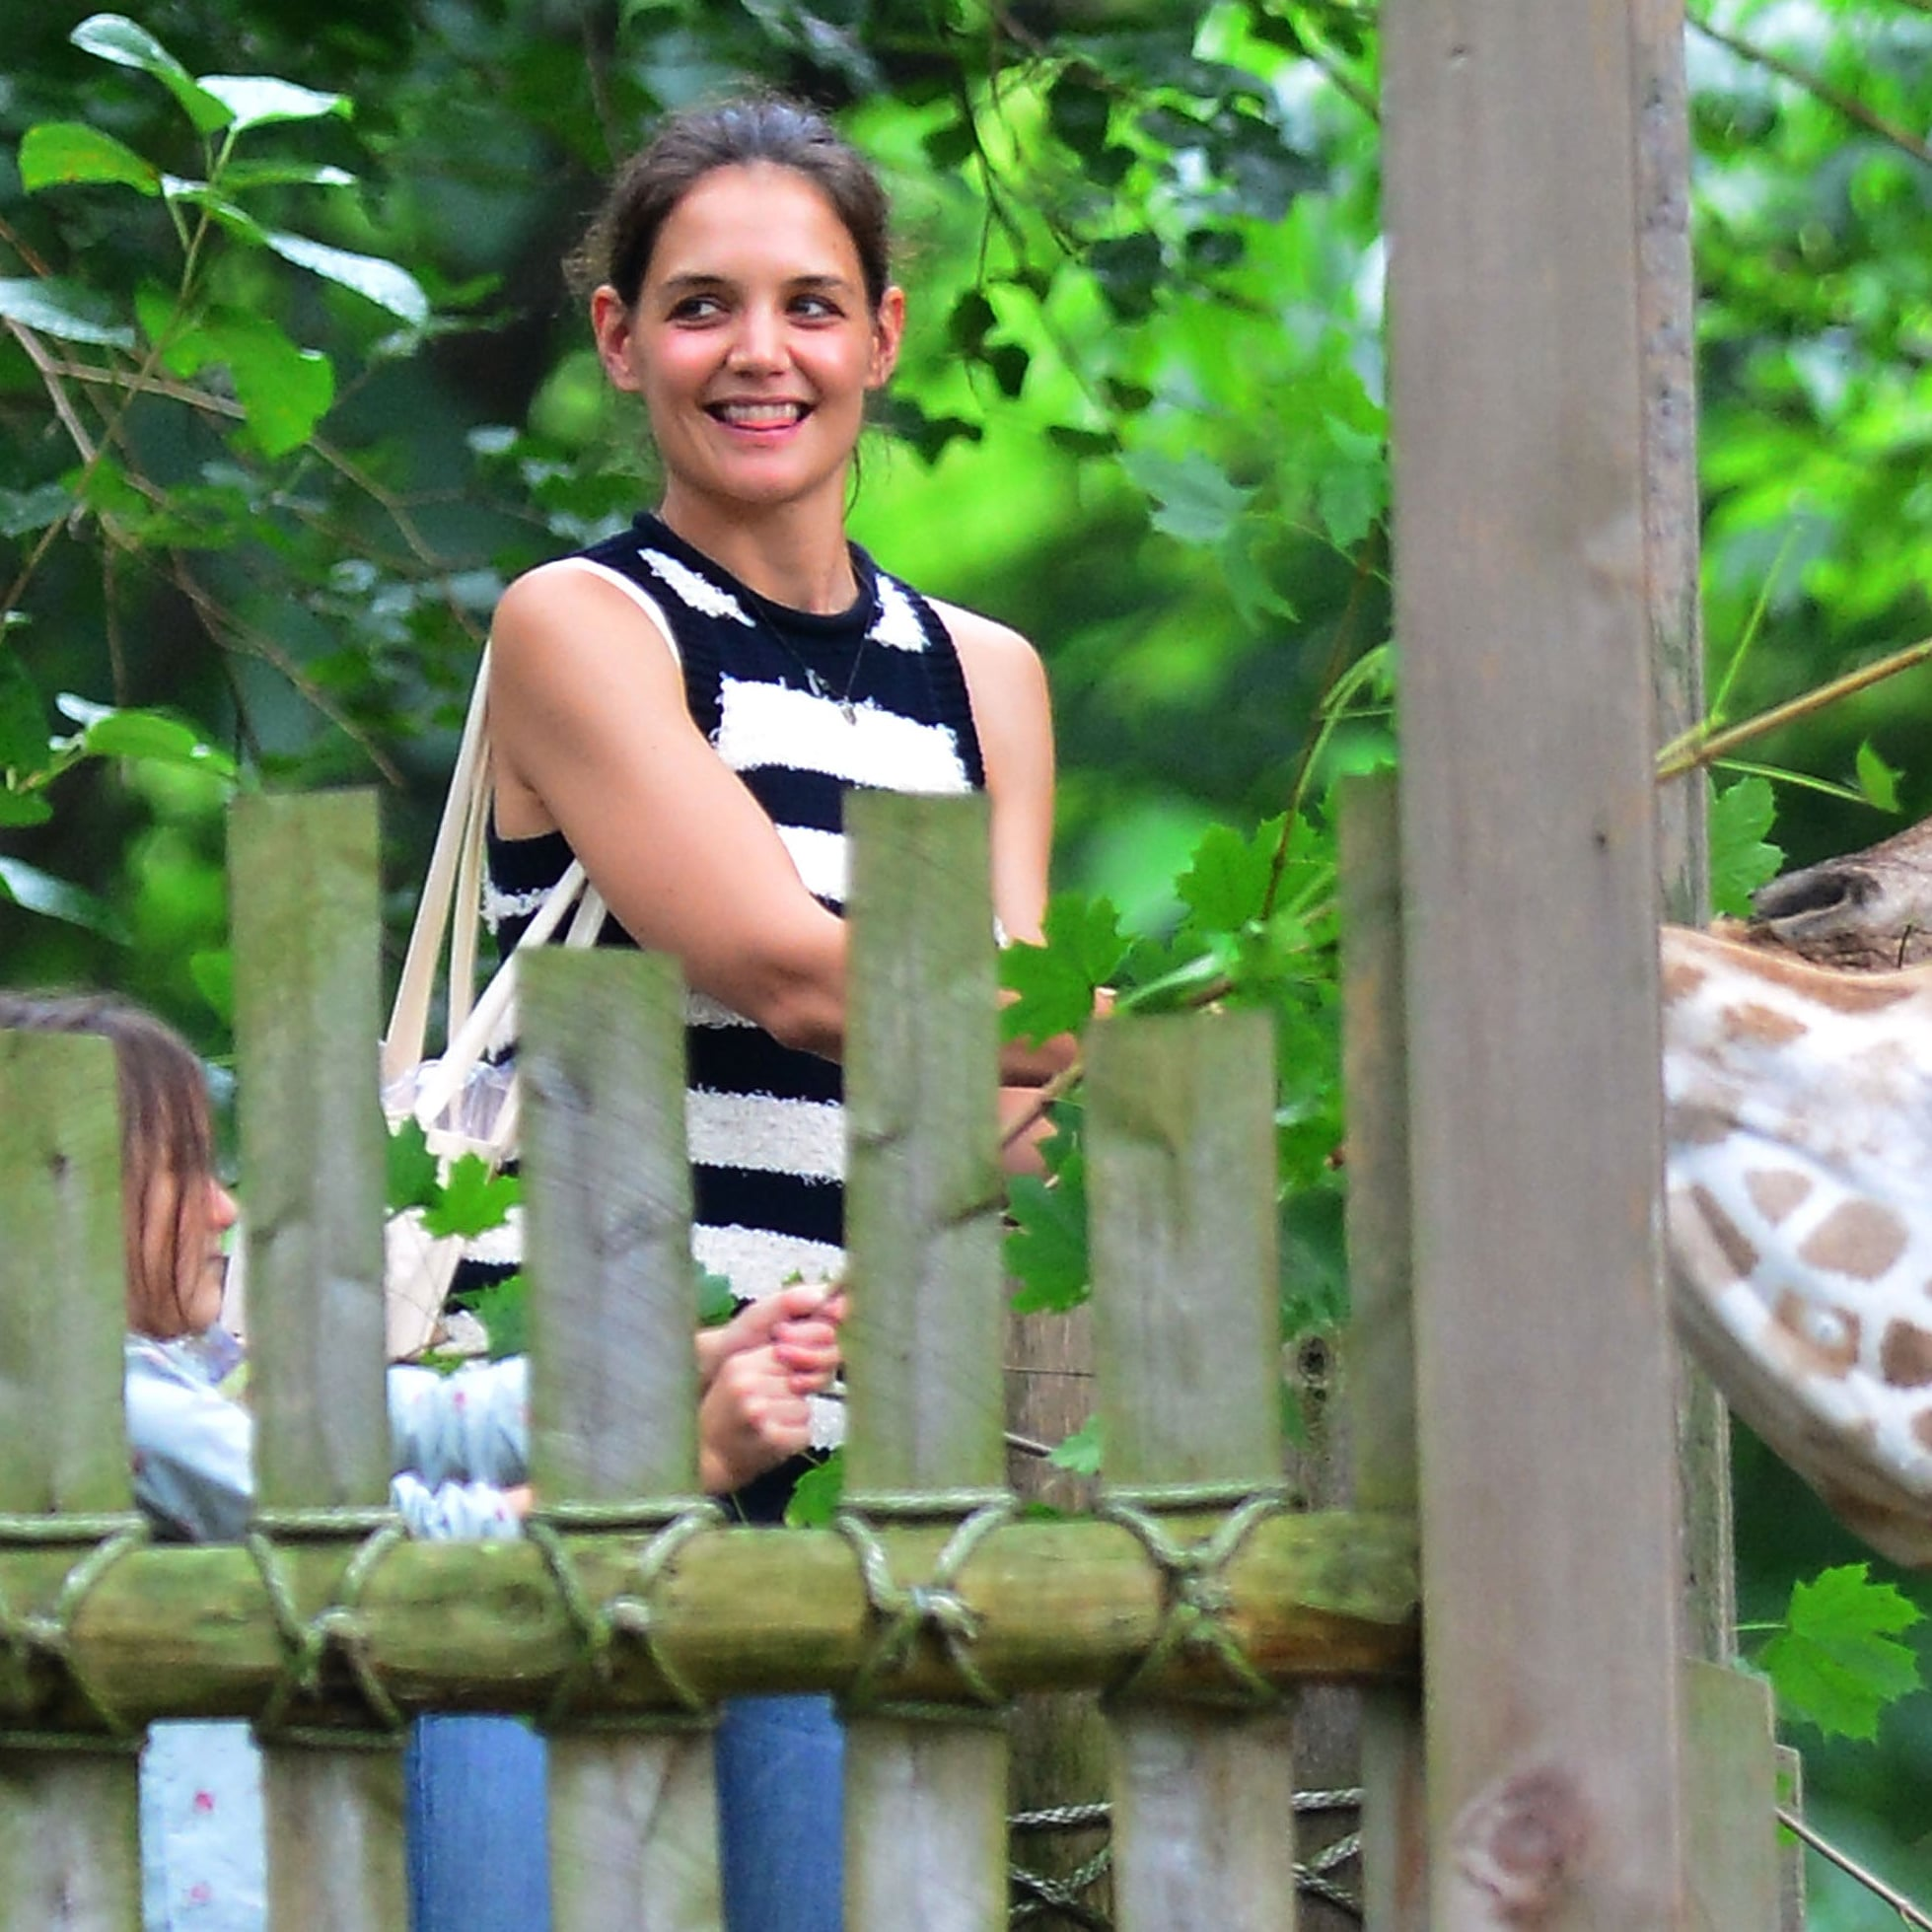 Suri Cruise gets her own zoo for the day Suri Cruise gets her own zoo for the day new foto